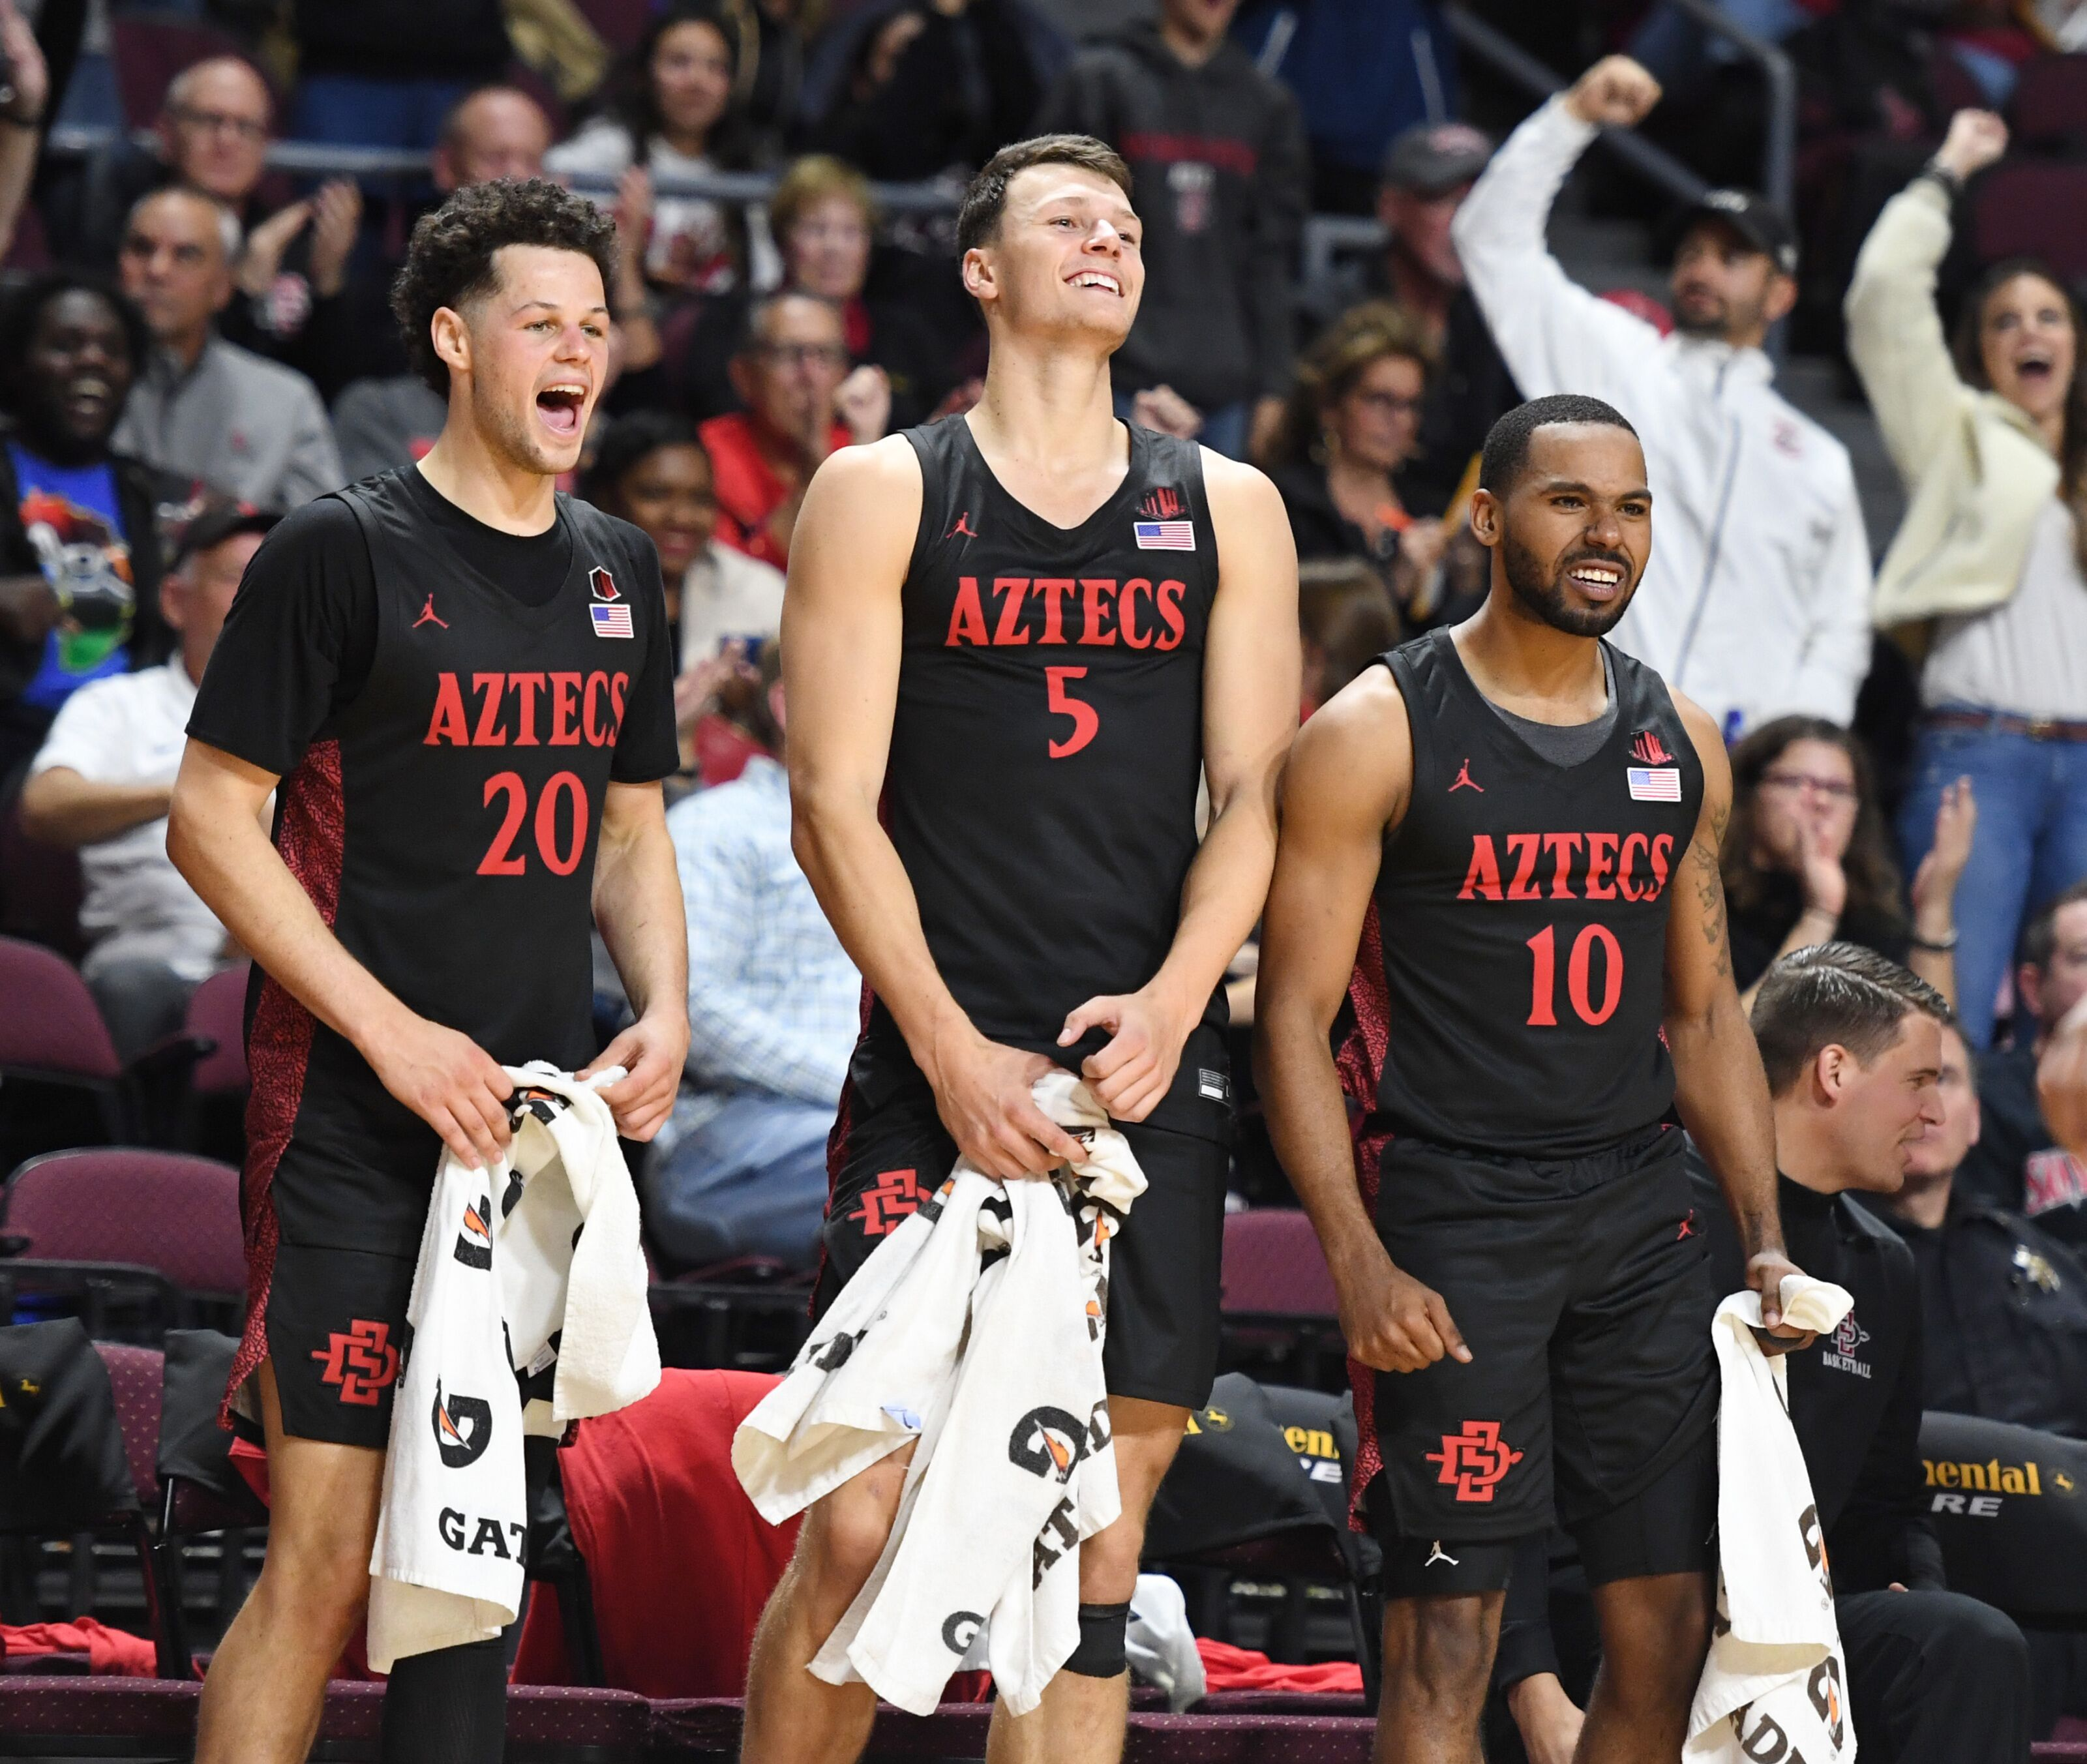 Nevada vs San Diego State: 2019-20 college basketball game preview, TV schedule